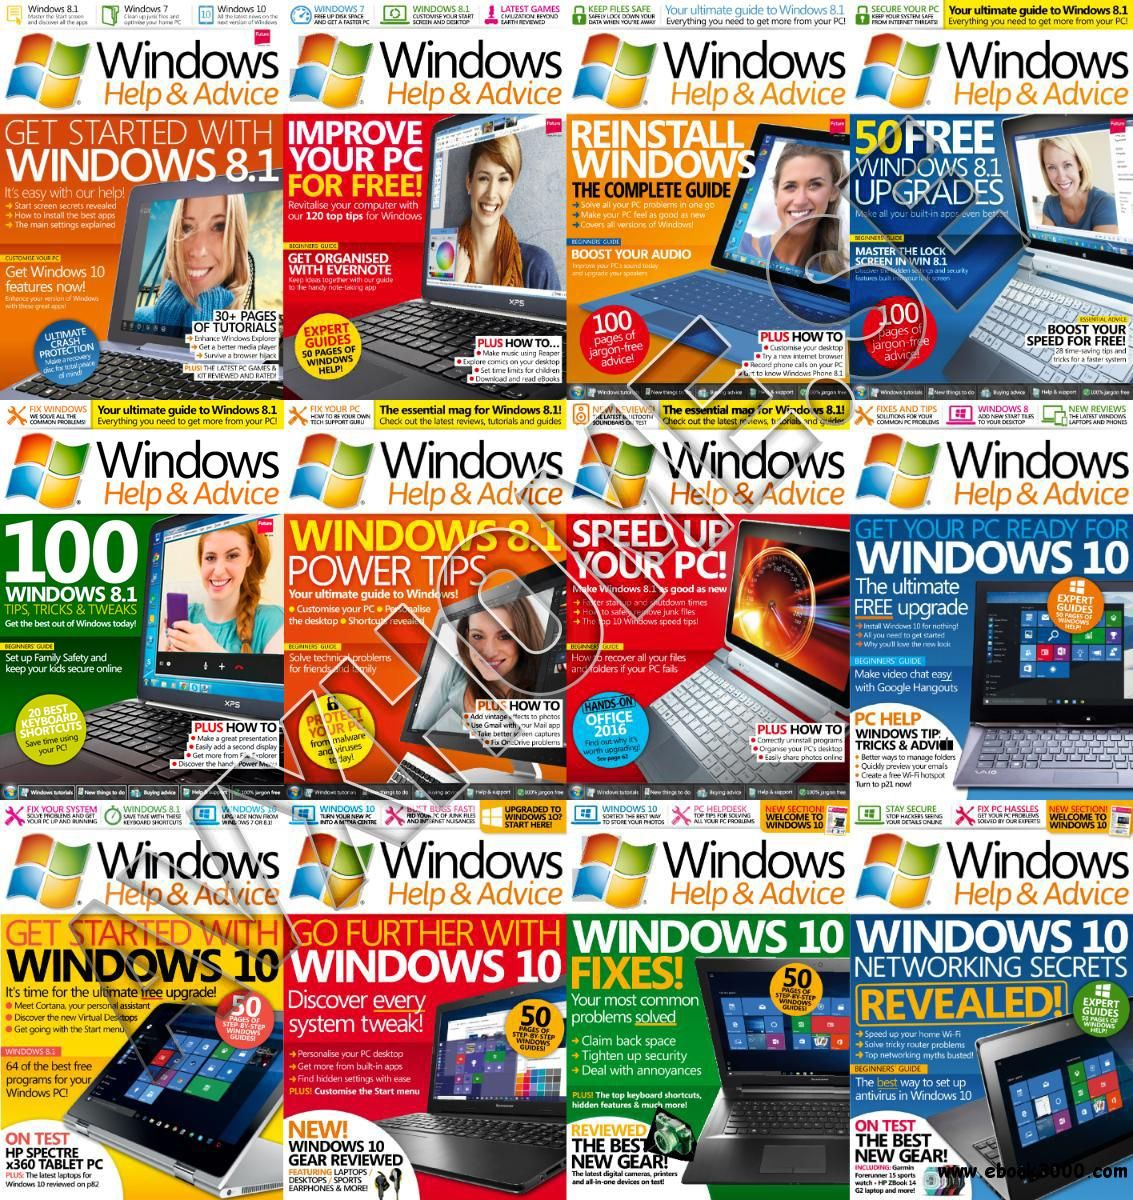 Windows Help & Advice 2015 Full Year Issues Collection